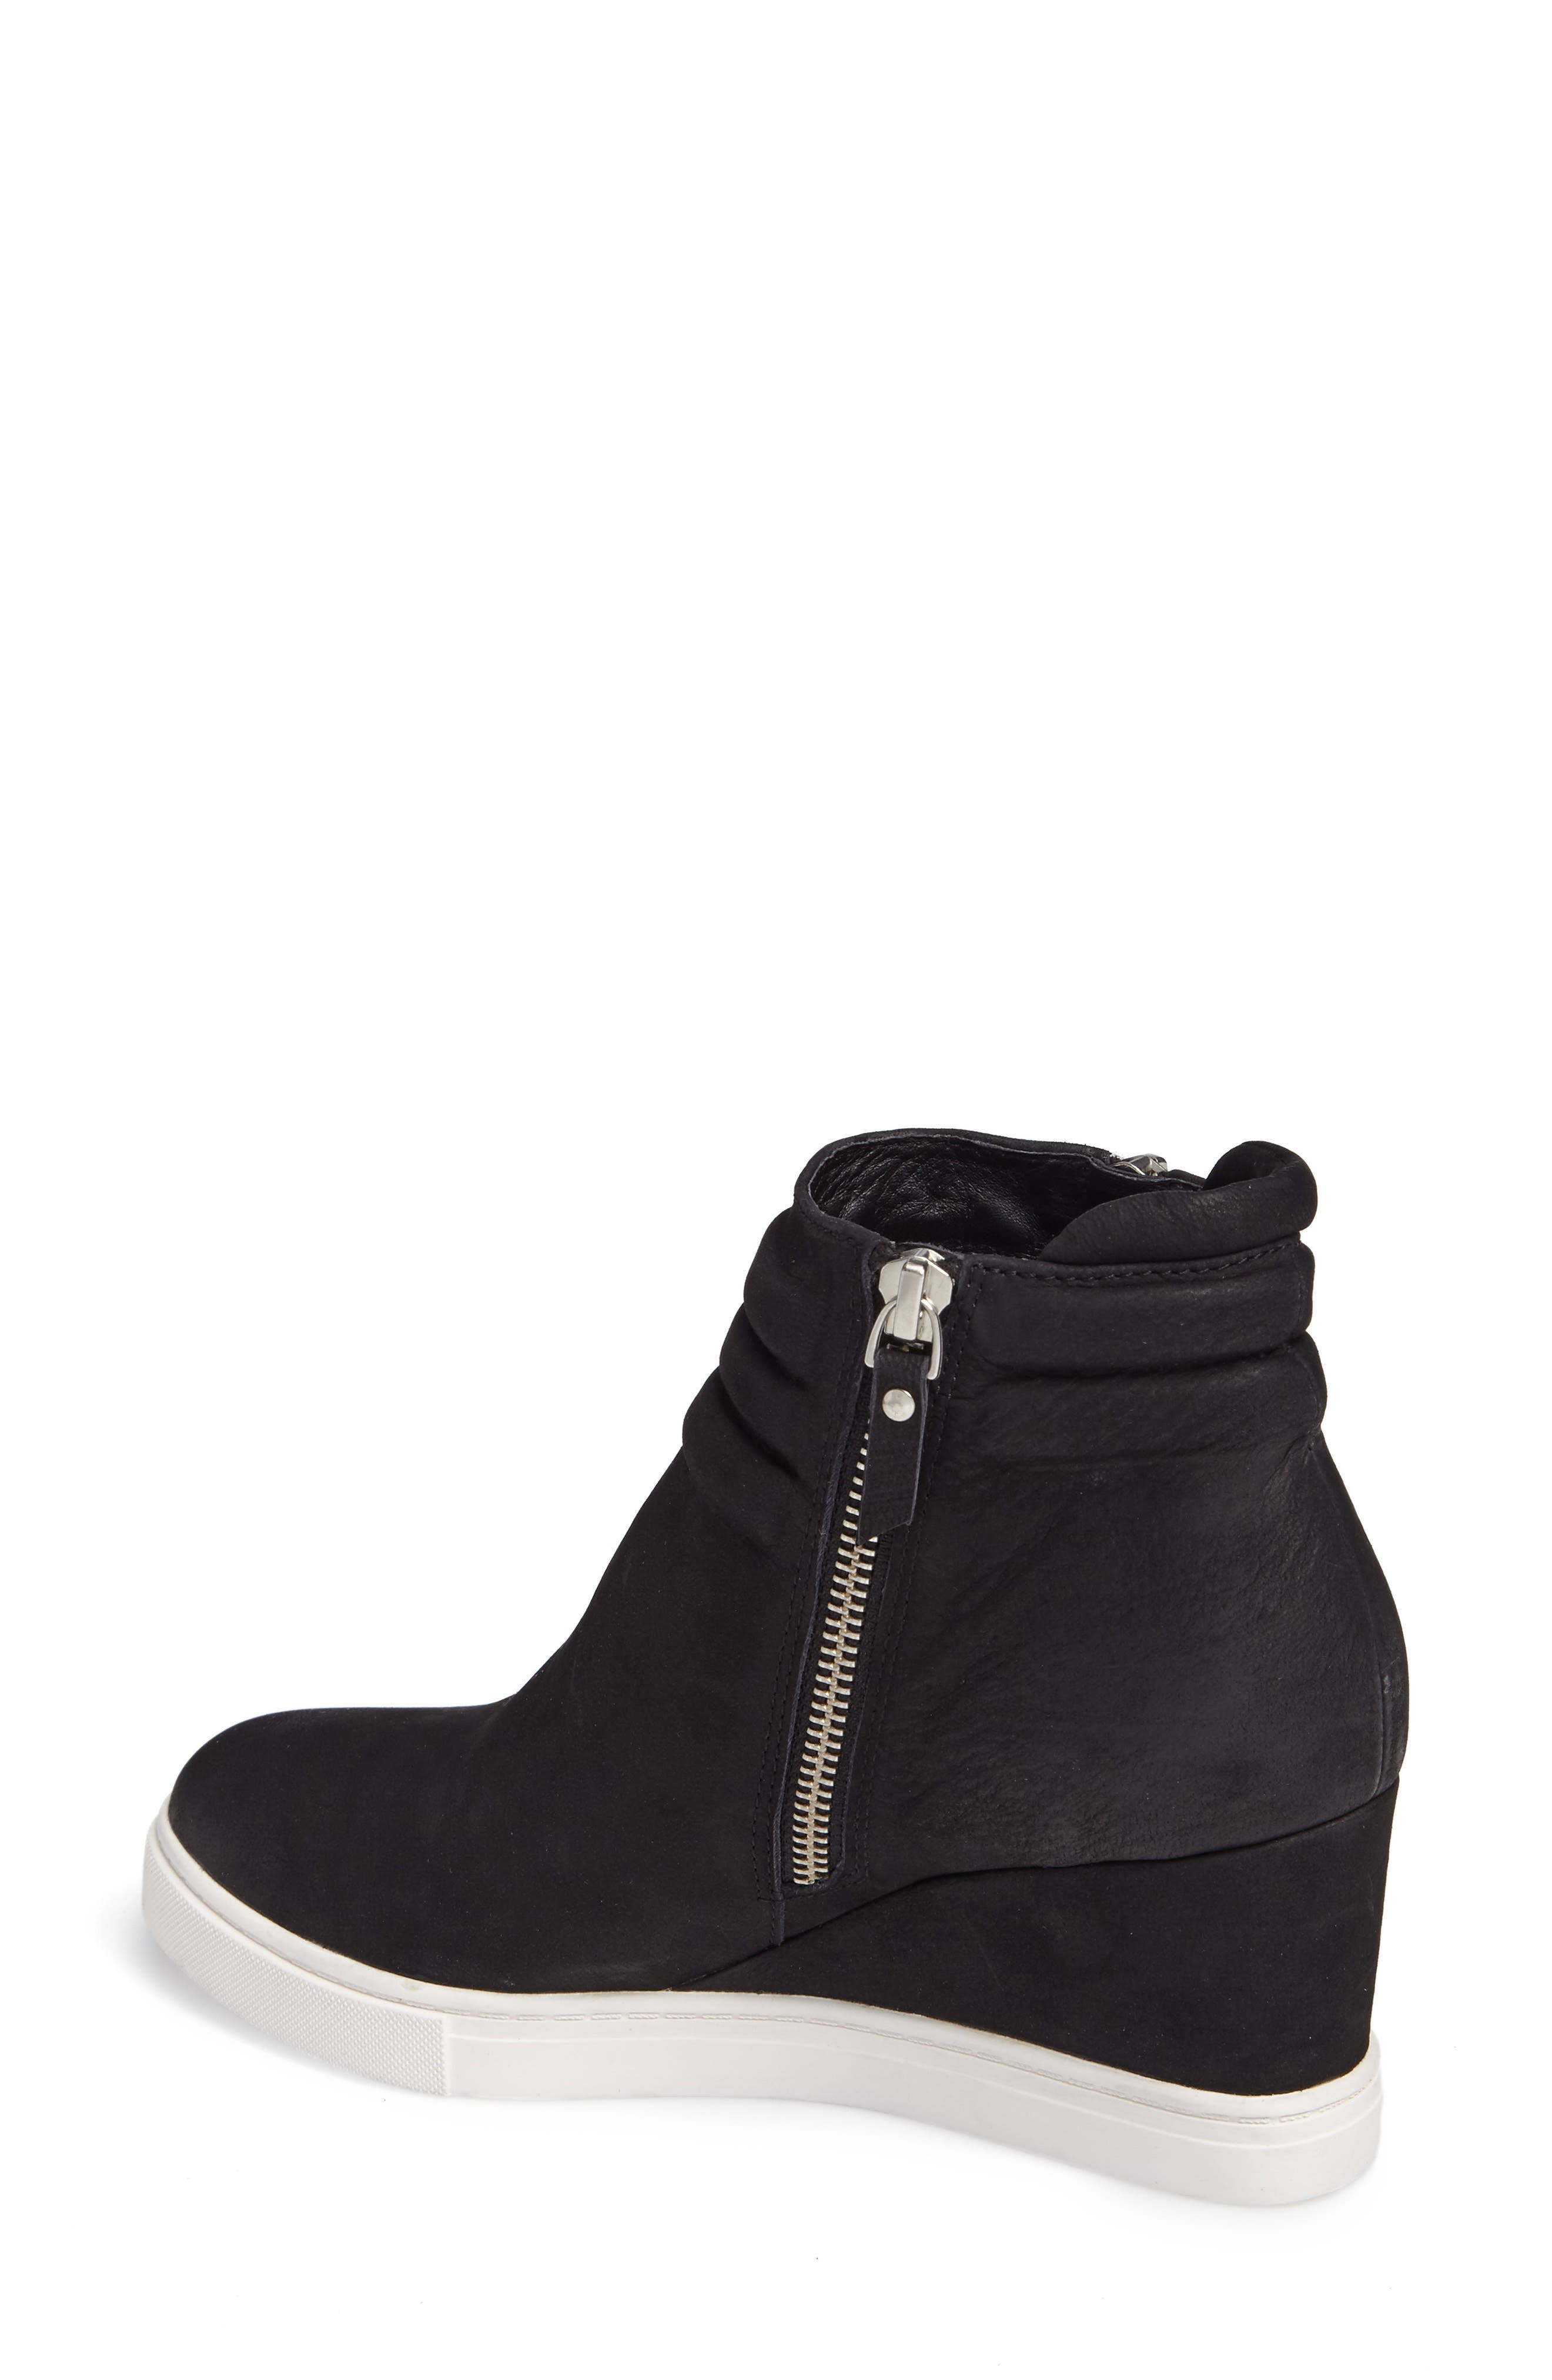 LINEA PAOLO, Frieda Wedge Bootie, Alternate thumbnail 2, color, BLACK LEATHER